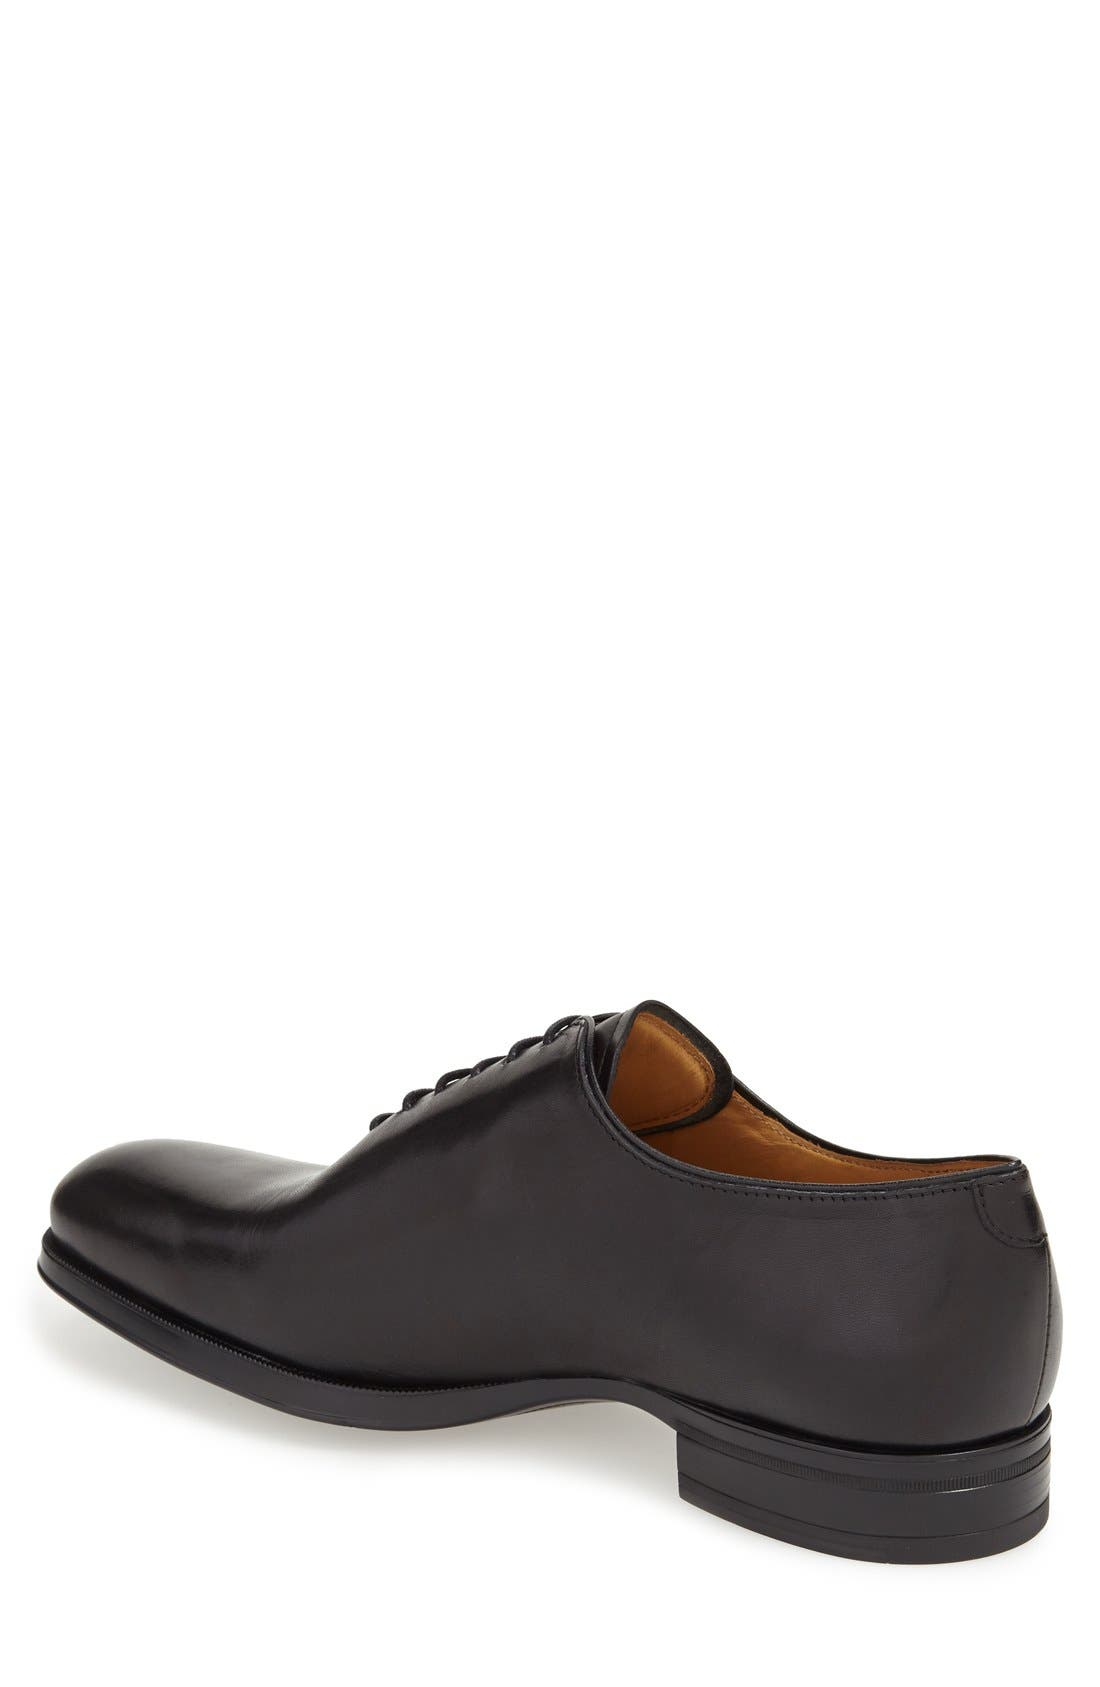 Alternate Image 2  - Vince Camuto 'Tarby' Wholecut Oxford (Men)